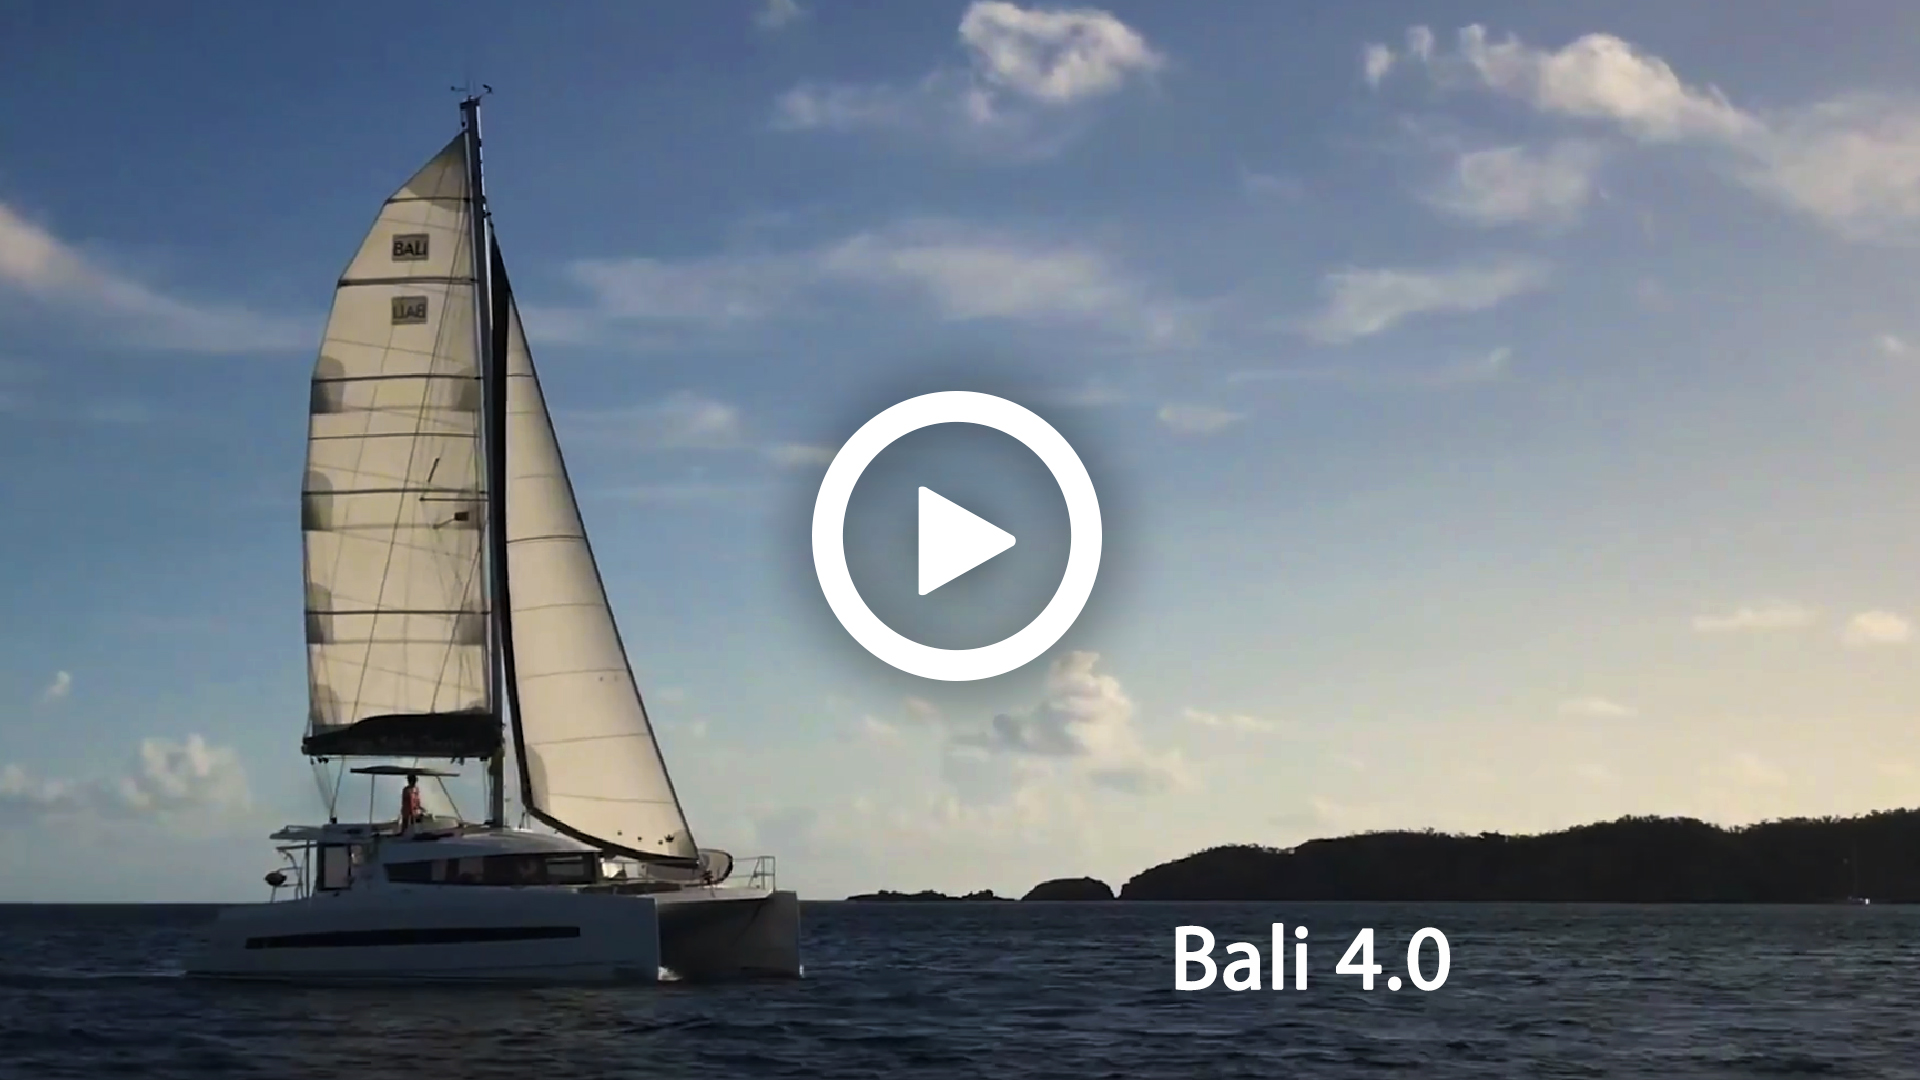 Sailing video to sale - Bali 4.0 charter to rent